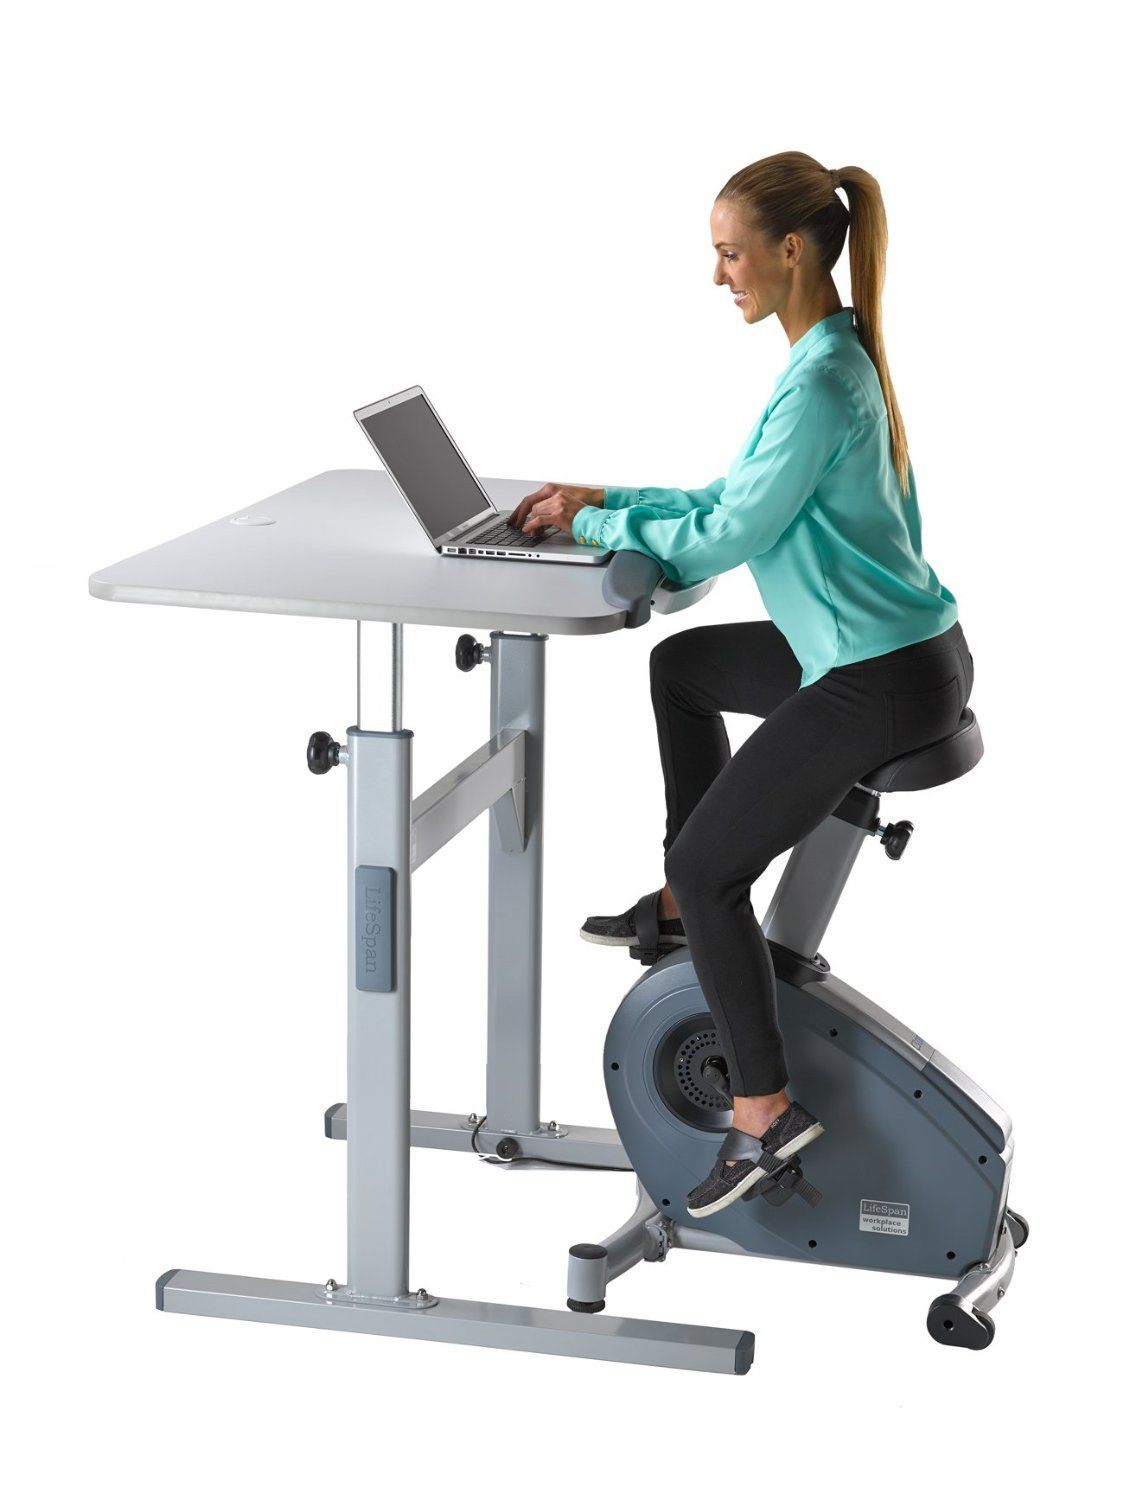 3 Under Desk Exercise Machines 187 Fitness Gizmos